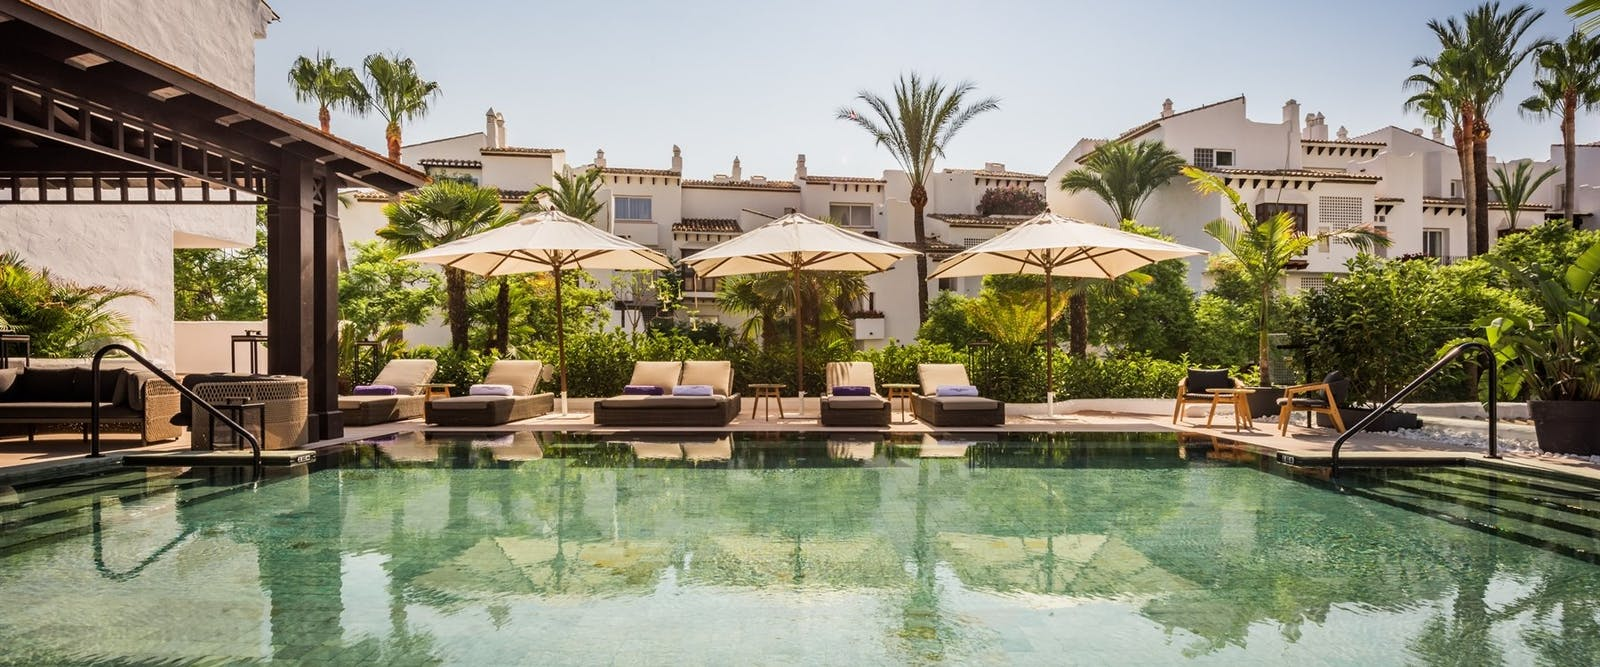 Swimming Pool at Nobu Marbella, Costa Del Sol, Spain